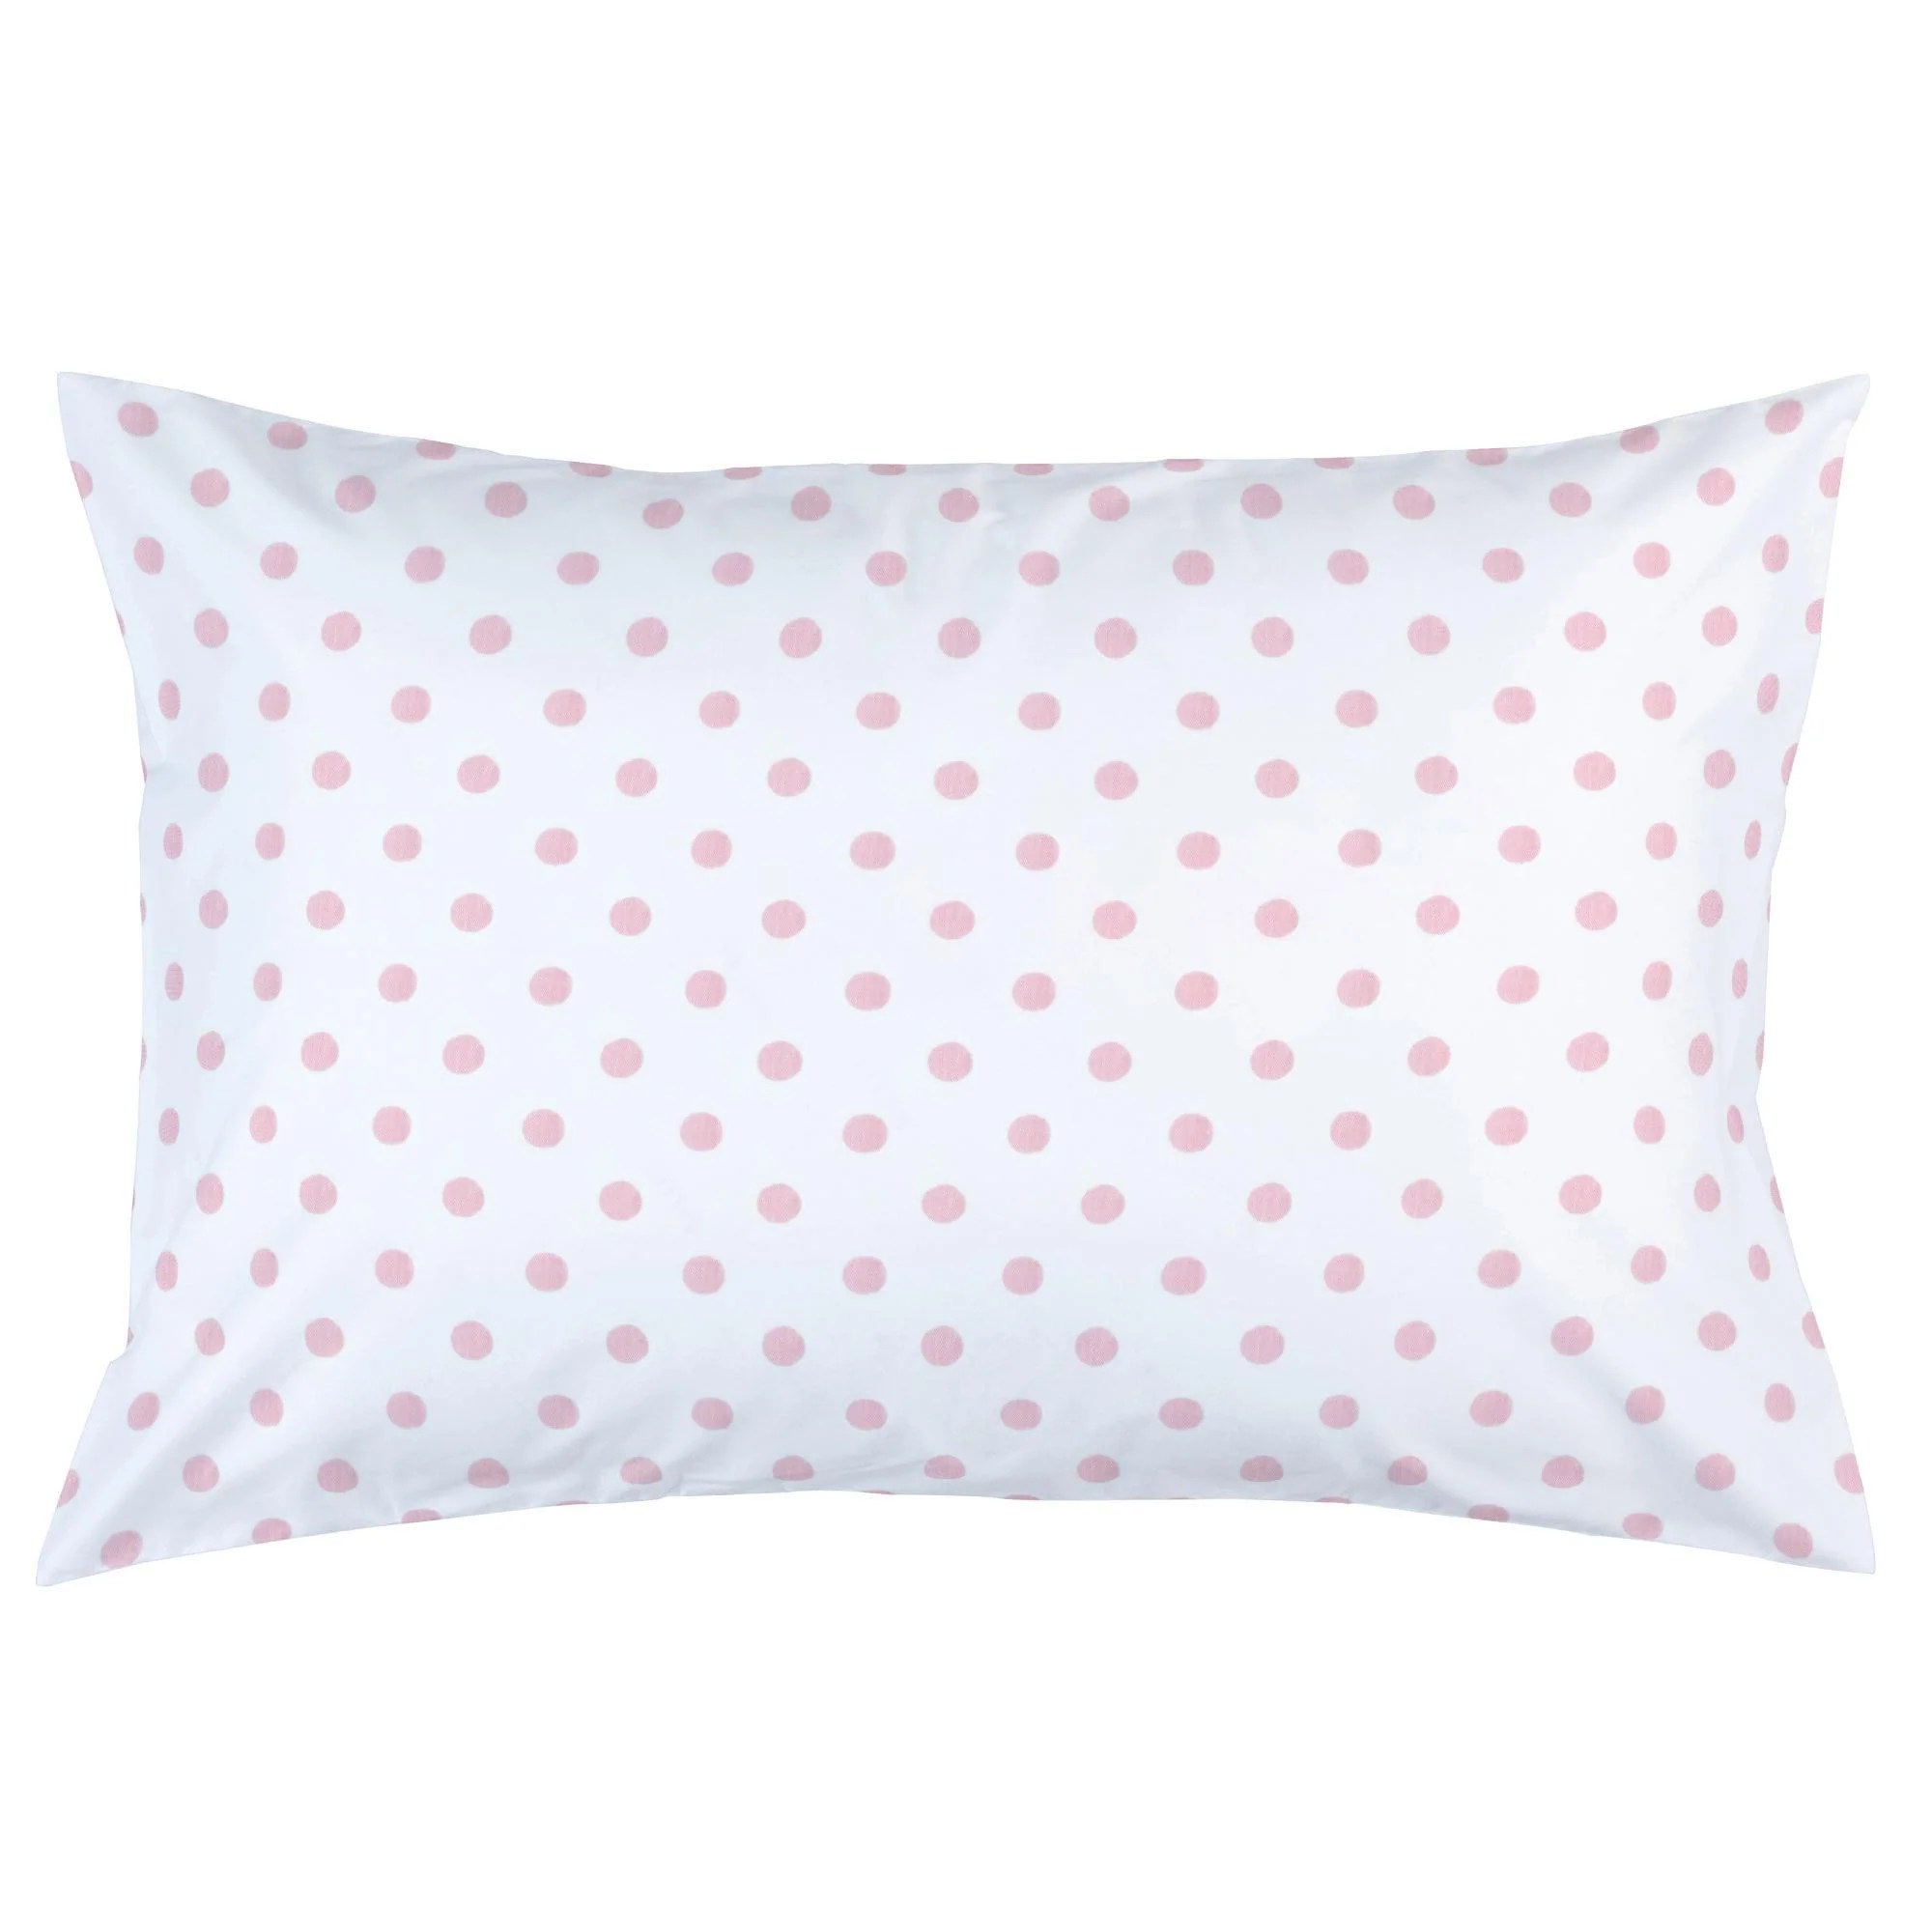 white and pink polka dot pillow case